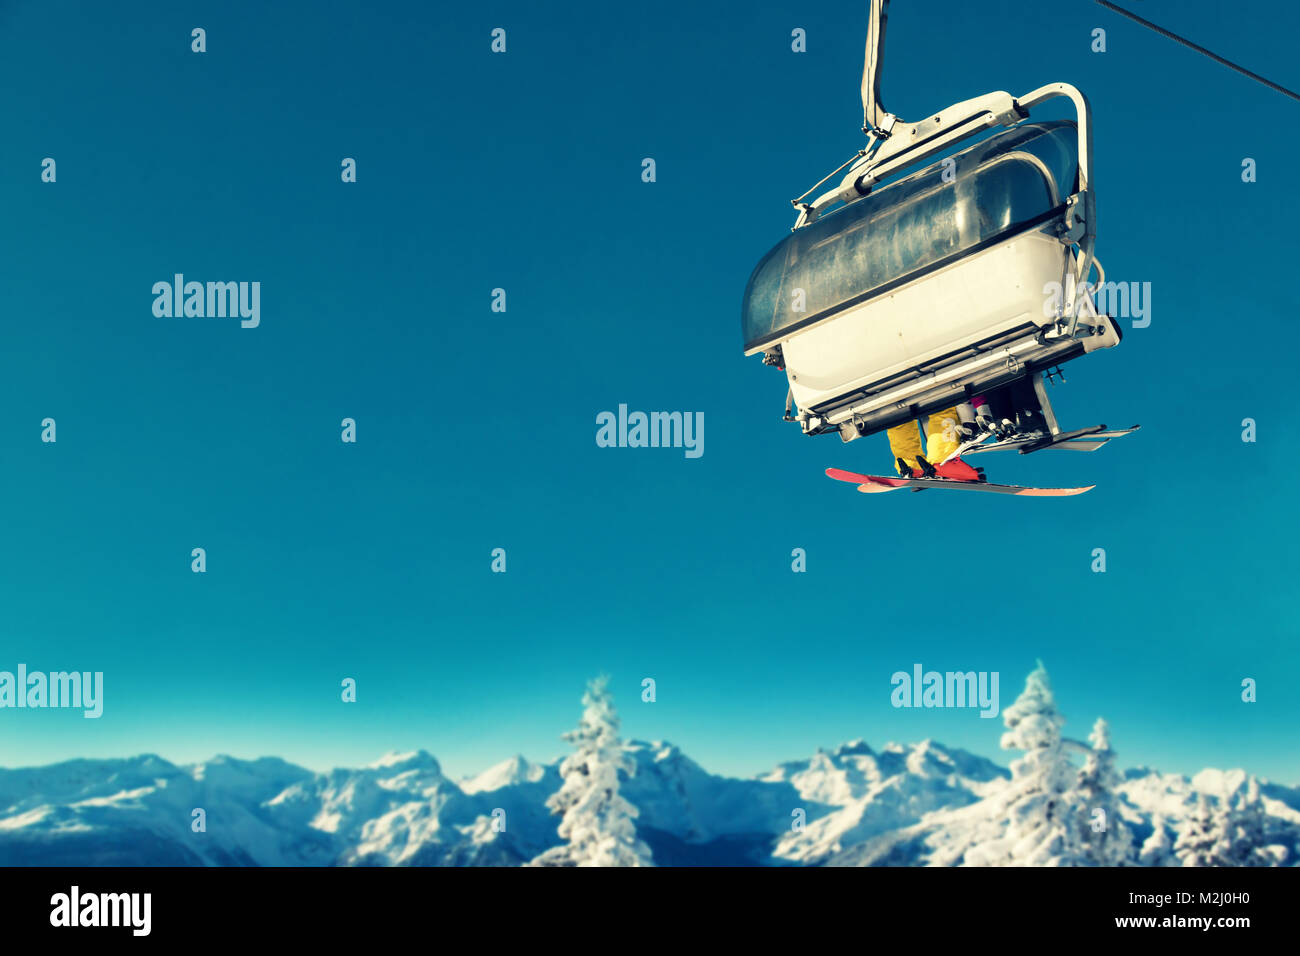 people in chairlift at ski resort above snowy trees and mountains - Stock Image